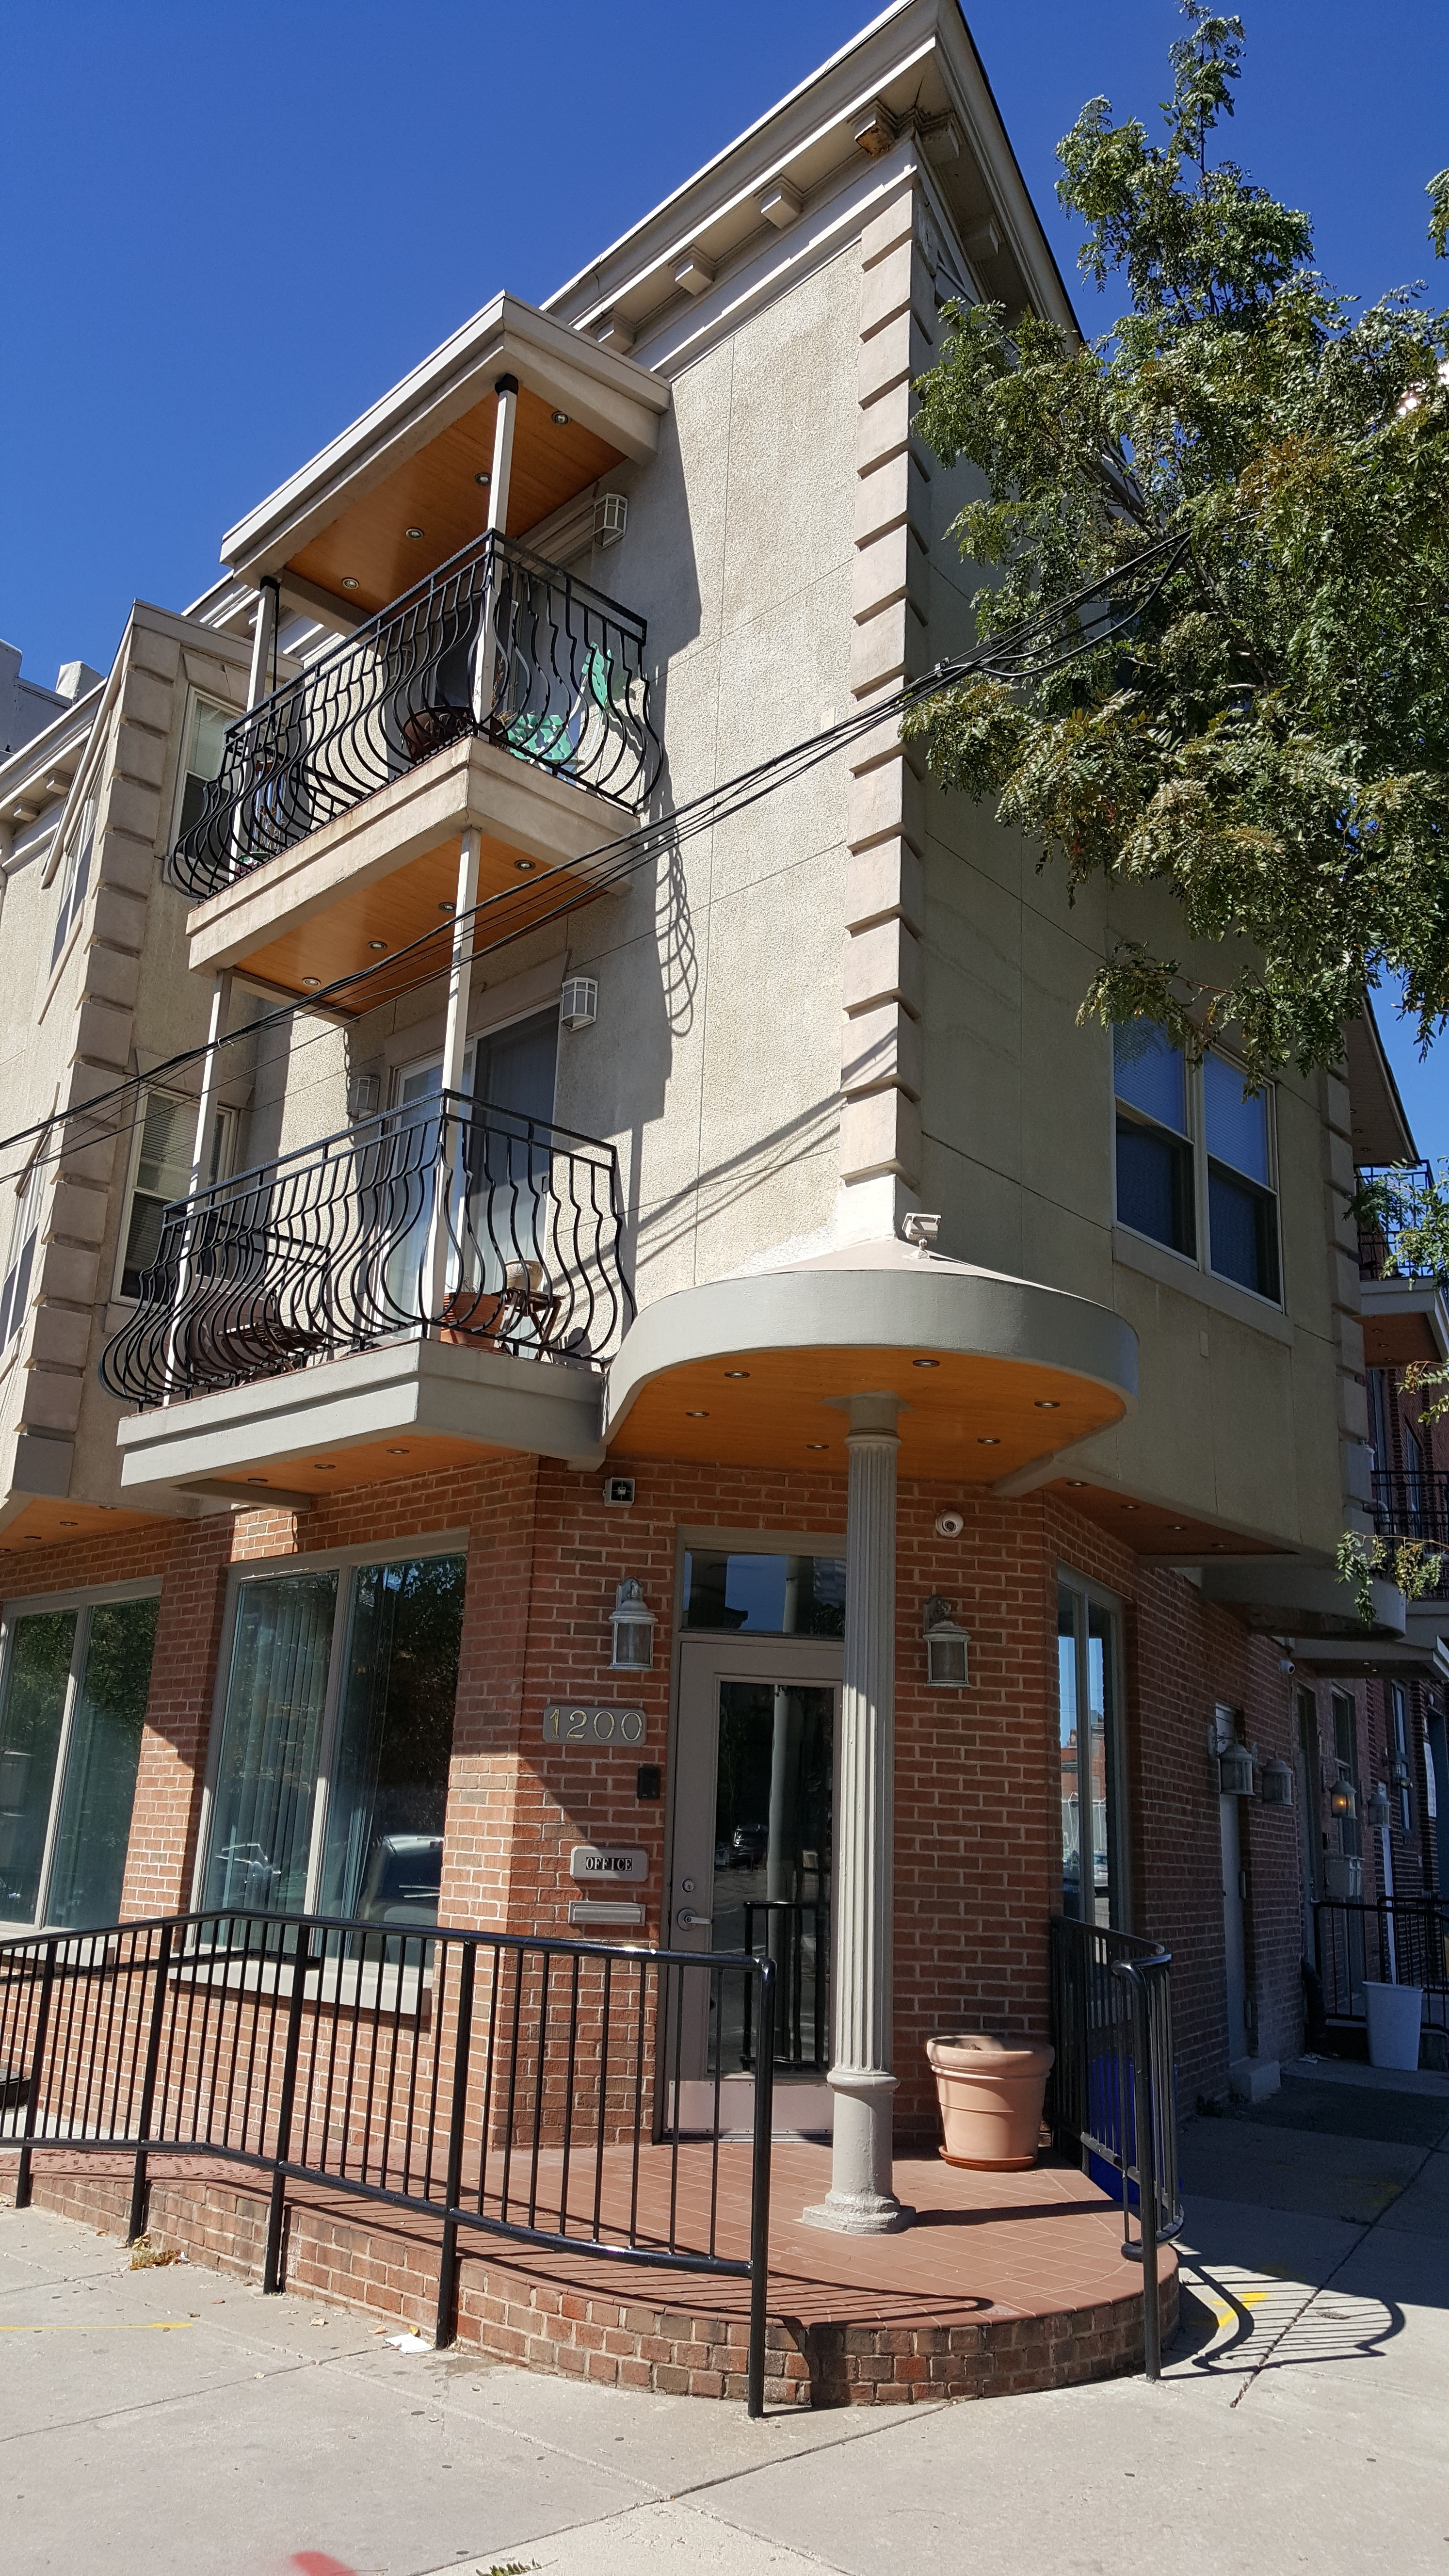 1 bedroom at 1204 chestnut st philadelphia pa whose your